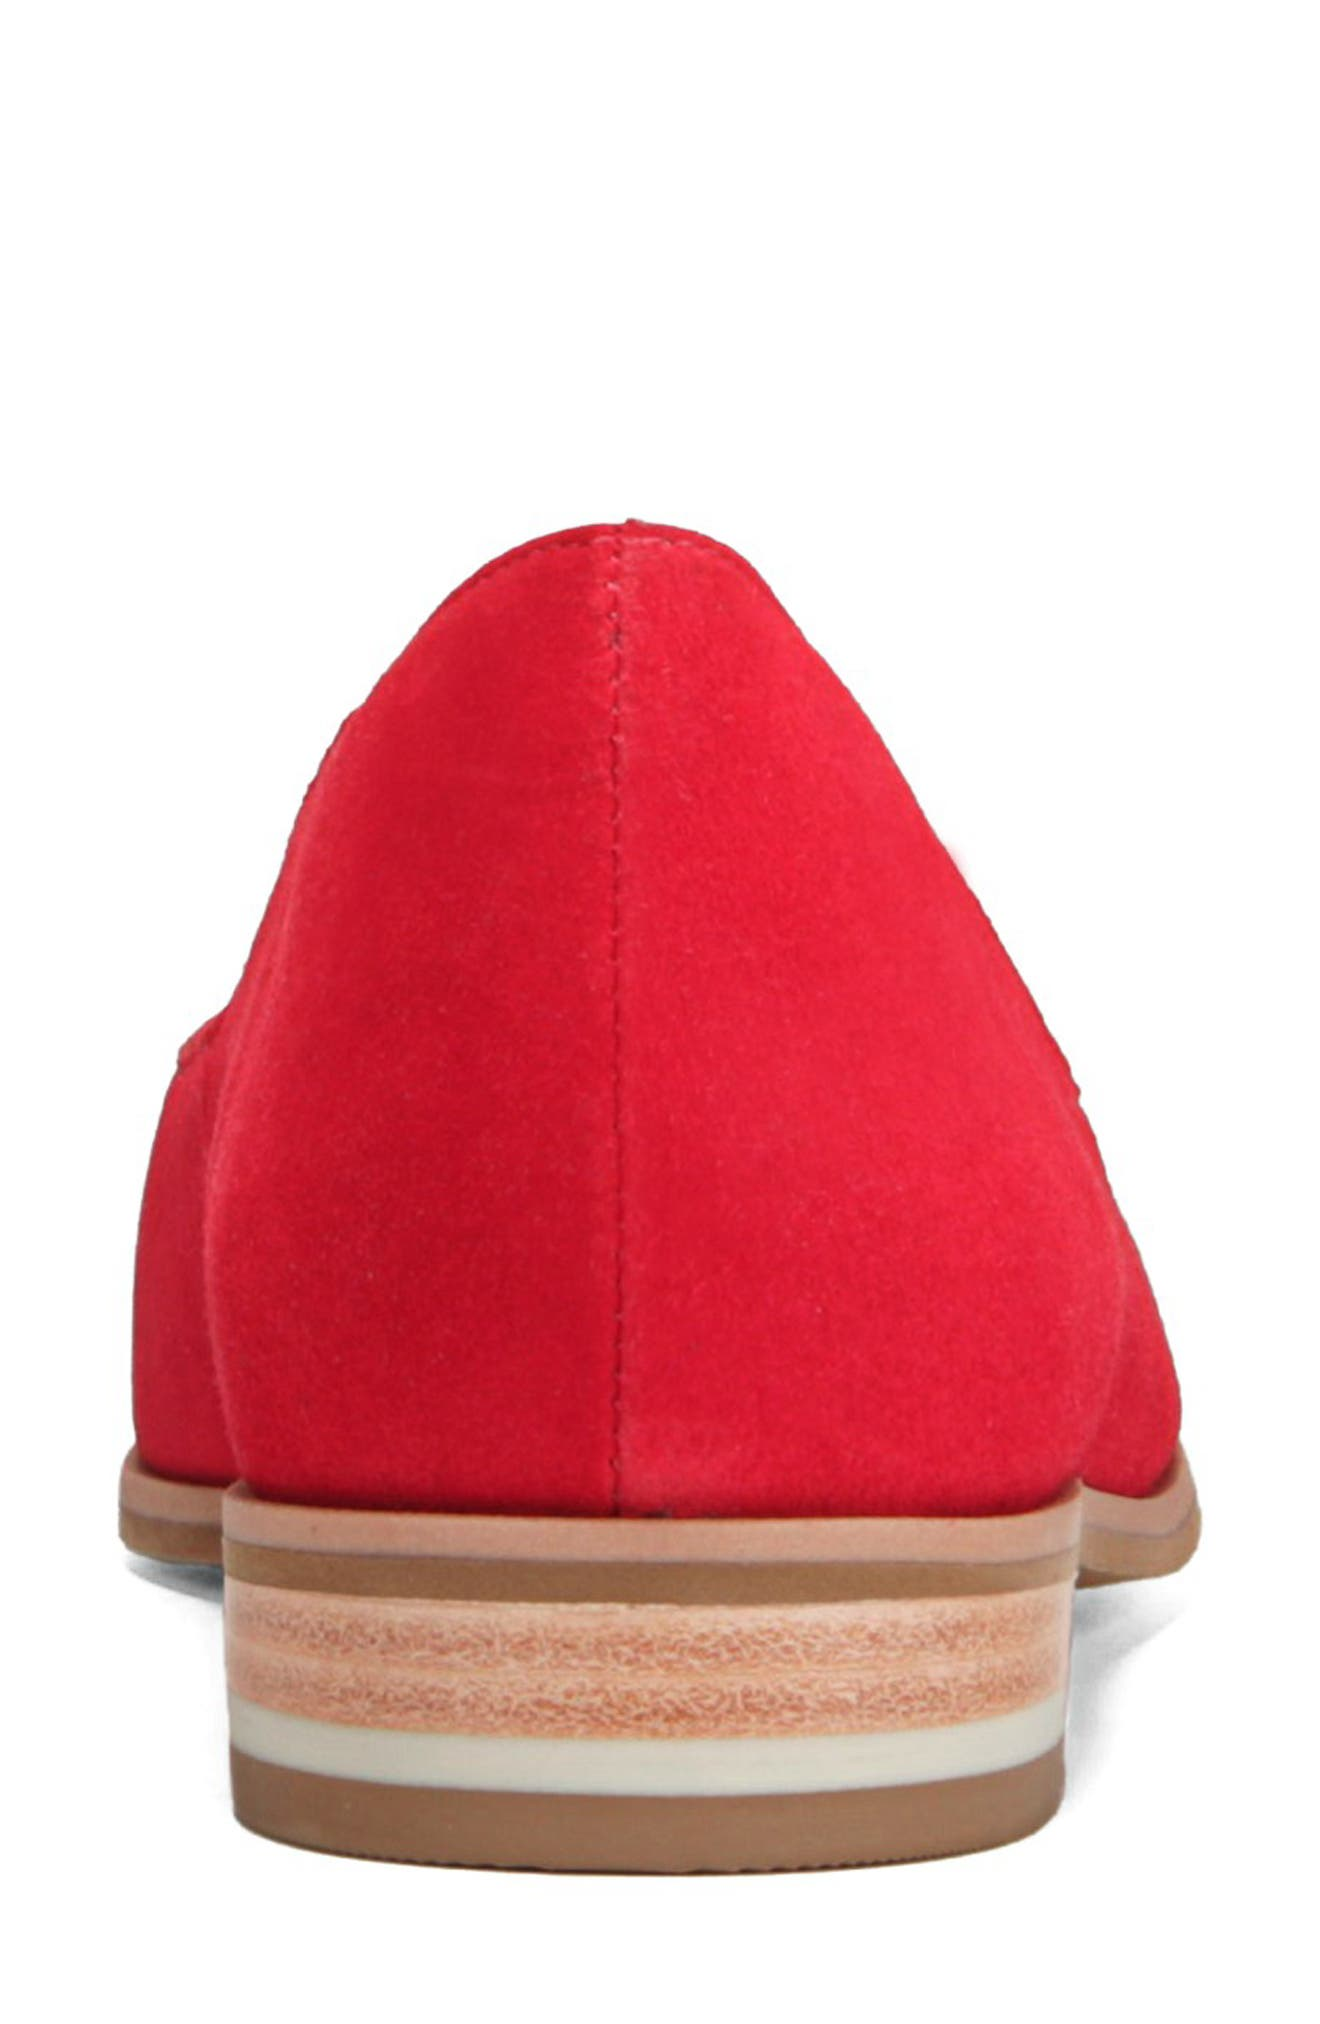 Dr. Scholls Flair Flat,                             Alternate thumbnail 7, color,                             RED LEATHER